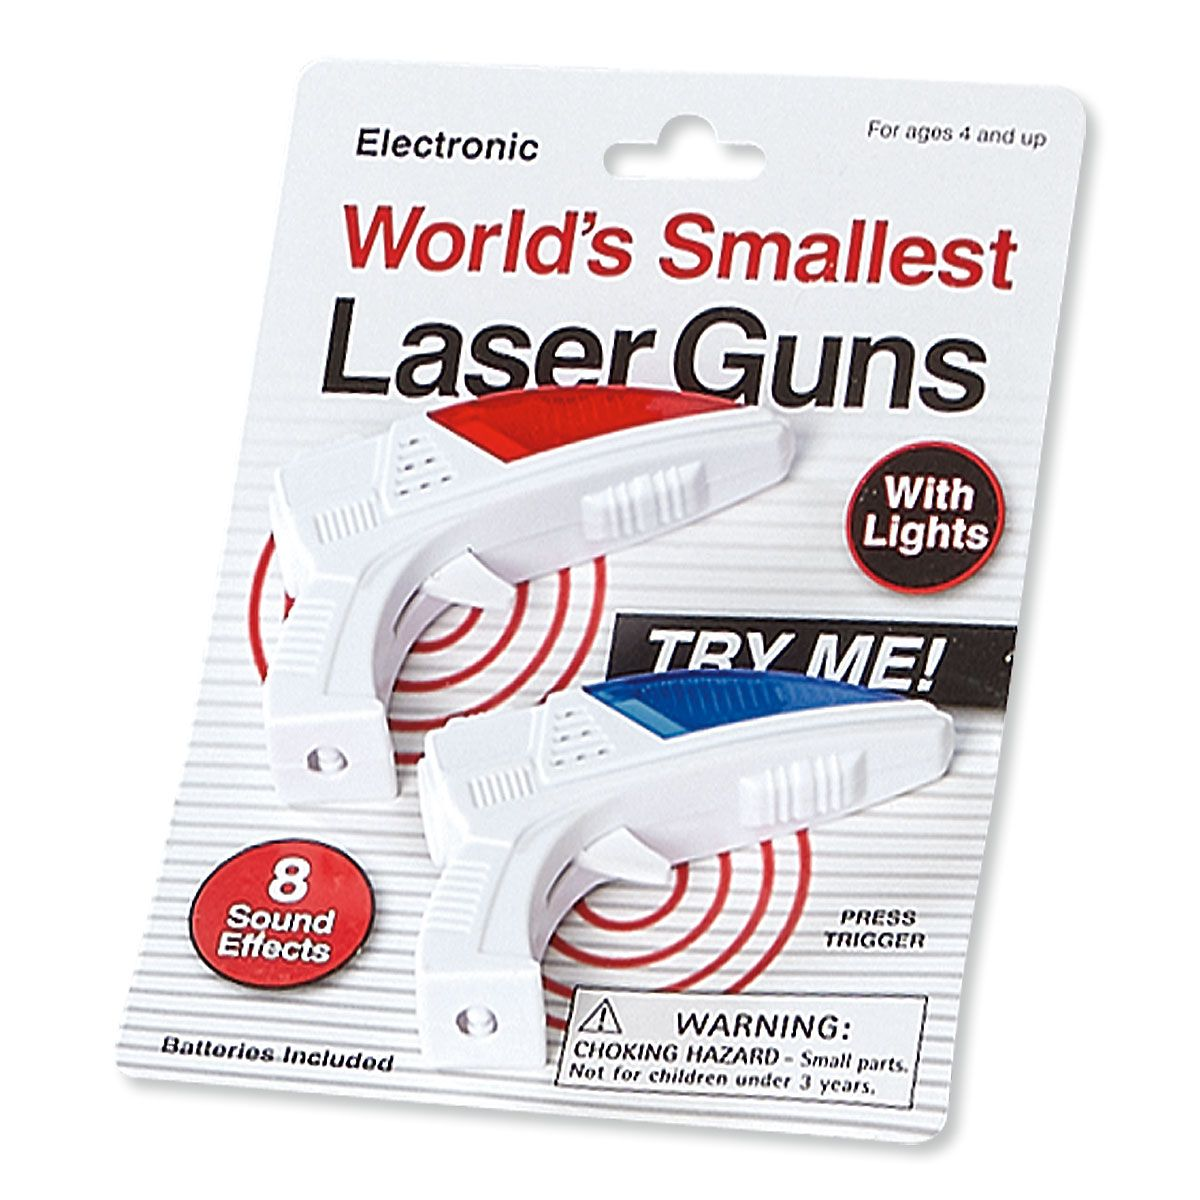 World's Smallest Laser Guns